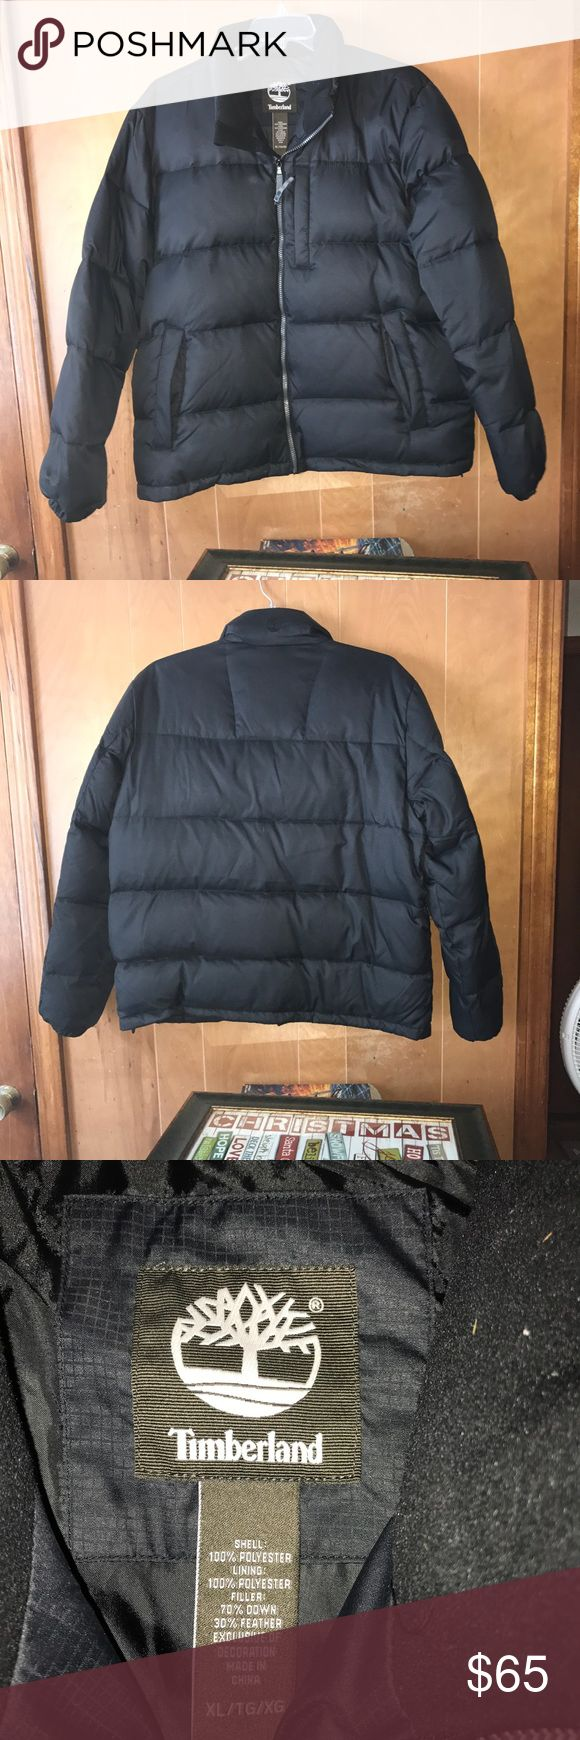 Men's XL Timberland jacket!!! Size XL men's black Timberland jacket, never worn before, price is negotiable Timberland Jackets & Coats Puffers